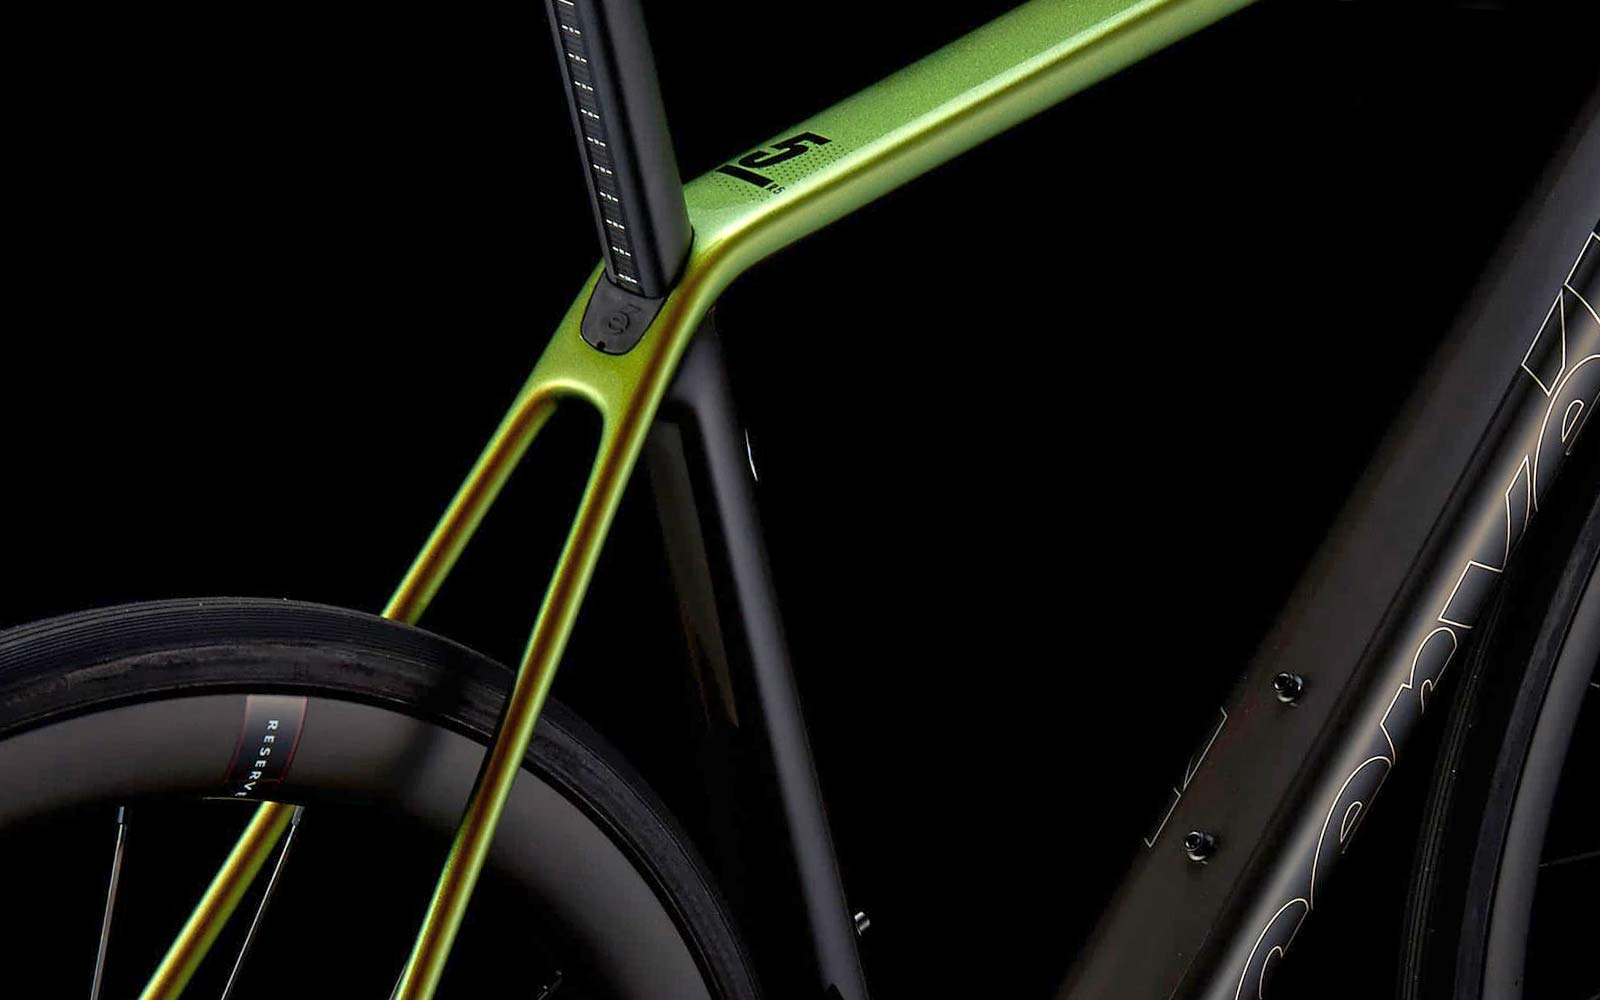 2022 Cervelo R5 Disc lightweight carbon all-rounder classic road bike,seatpost clamp detail